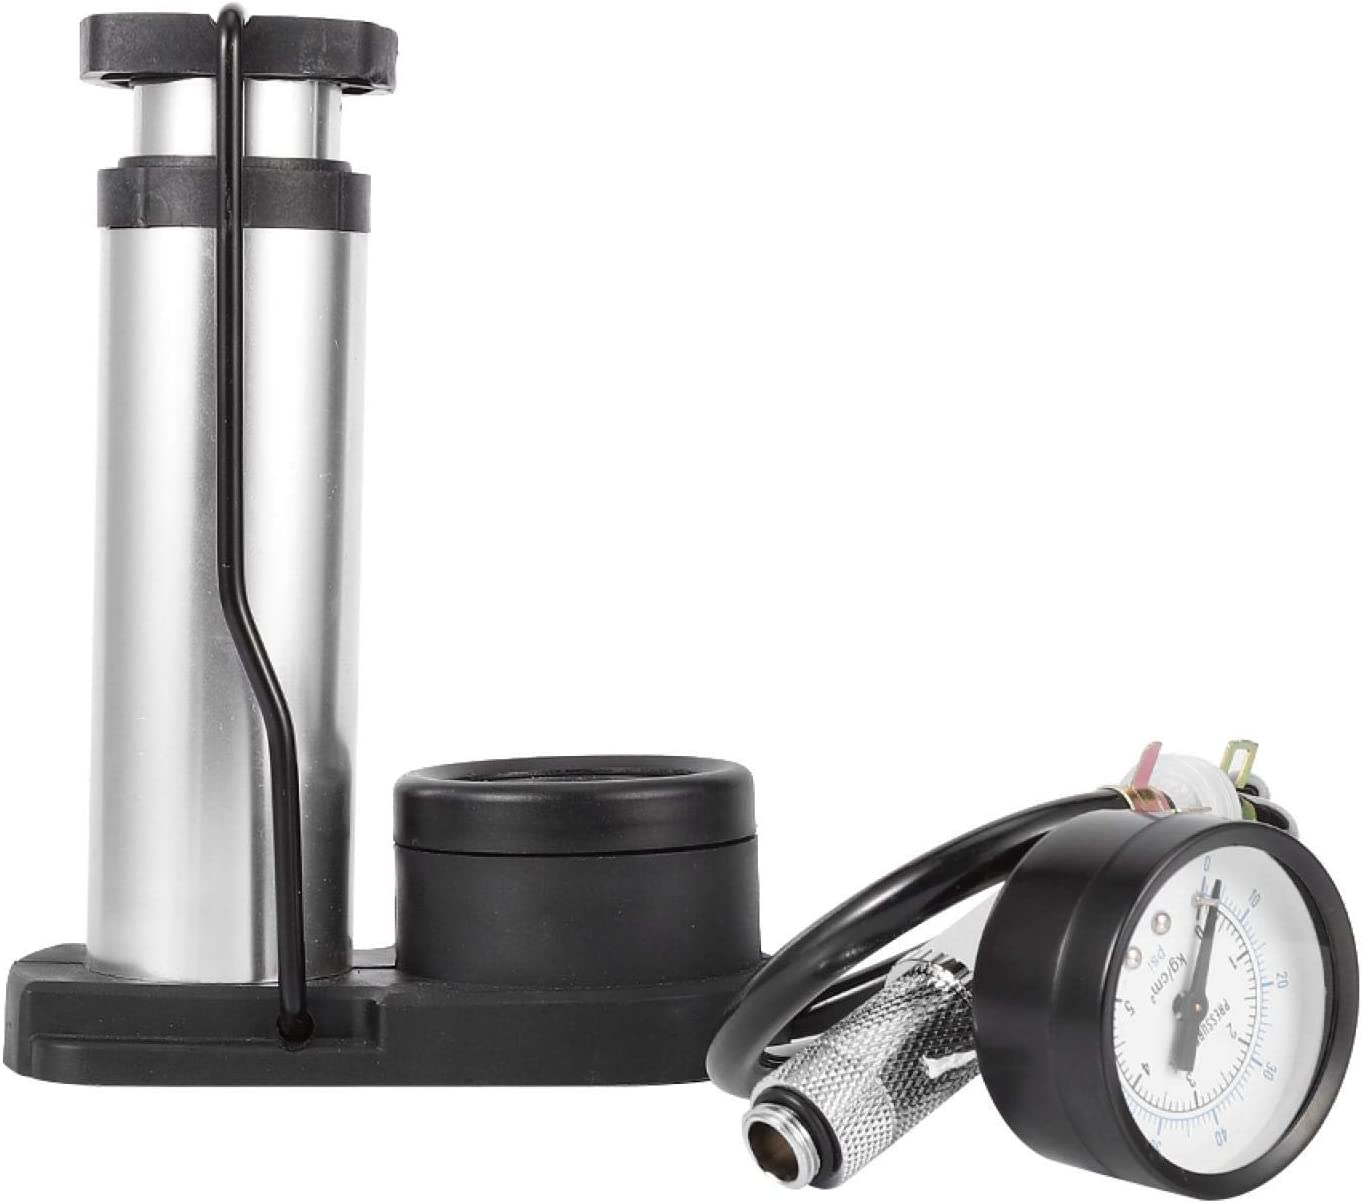 Heayzoki Water Cooling System Pressure Barometer Double Co 67% OFF of fixed price outlet Gauge